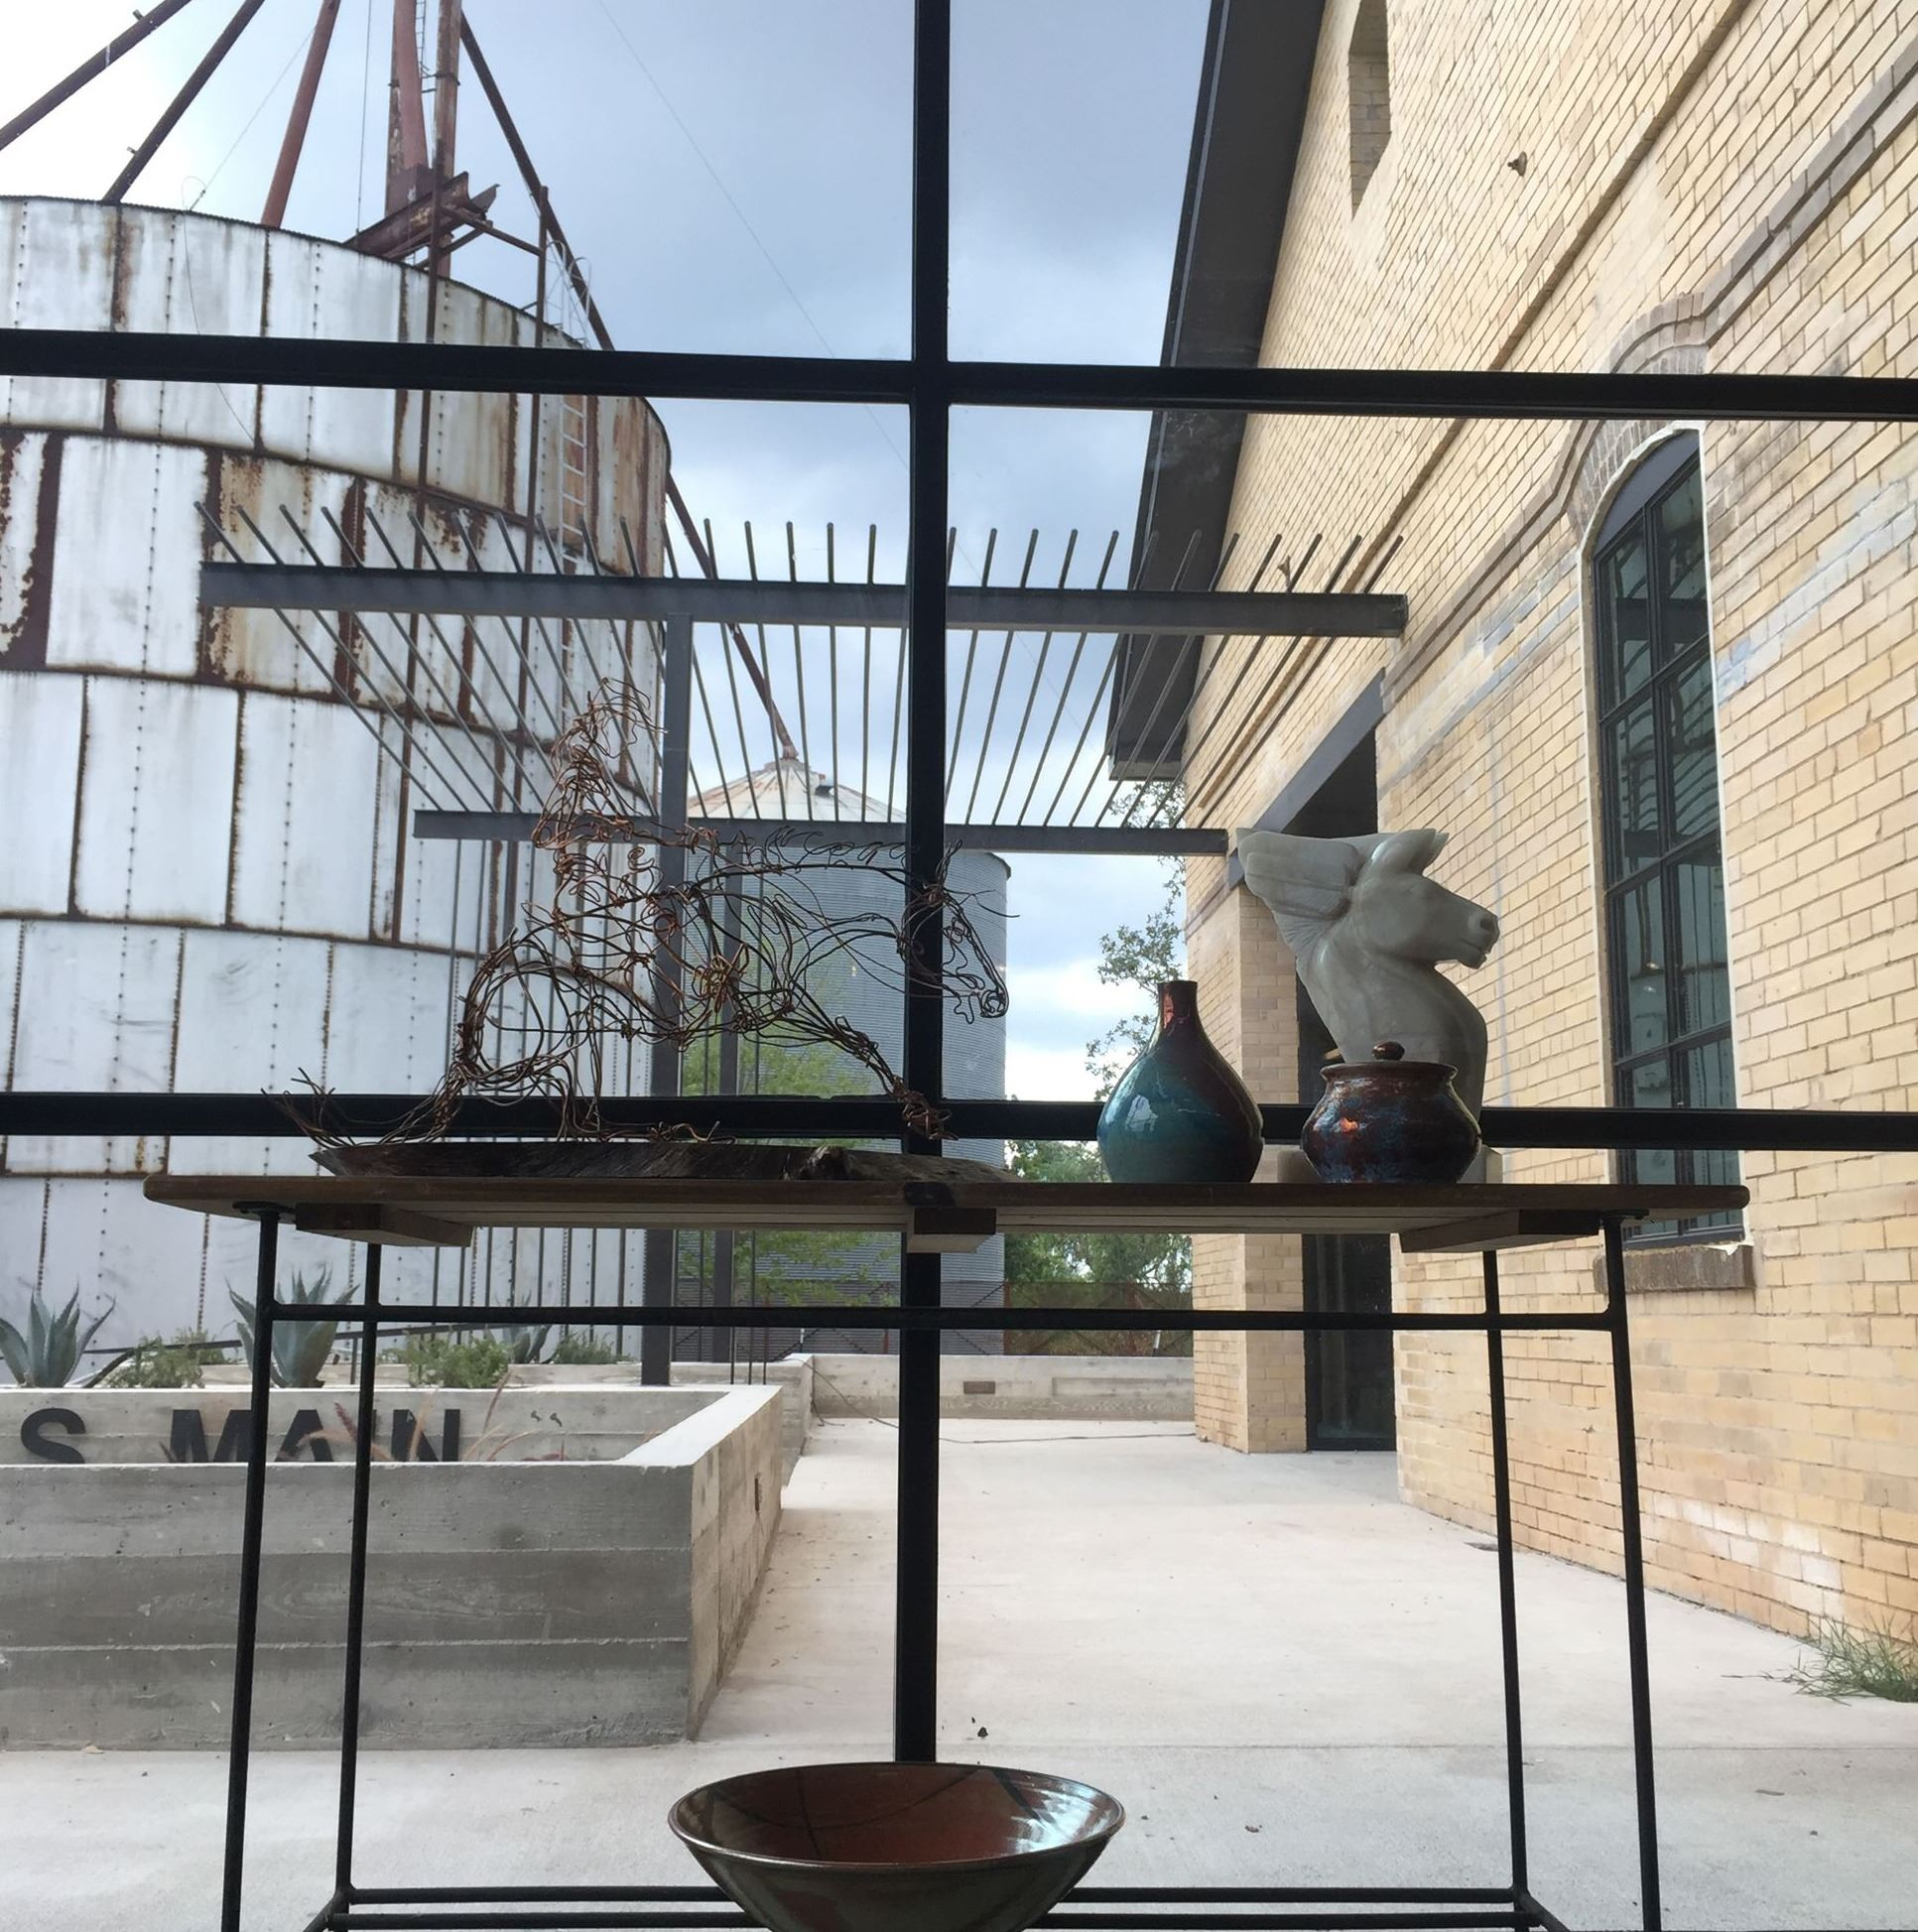 Art sculptures at Assemblage with background view of old silos in the window